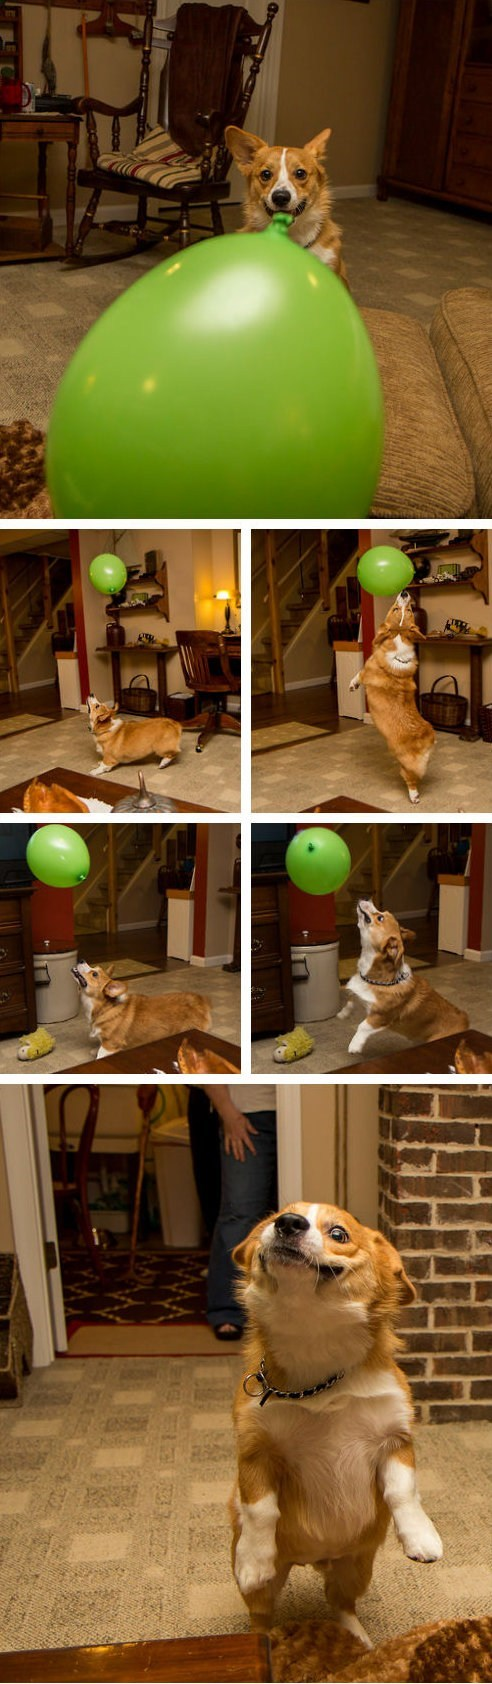 Look At This Balloon-Chasing Dog of the Day